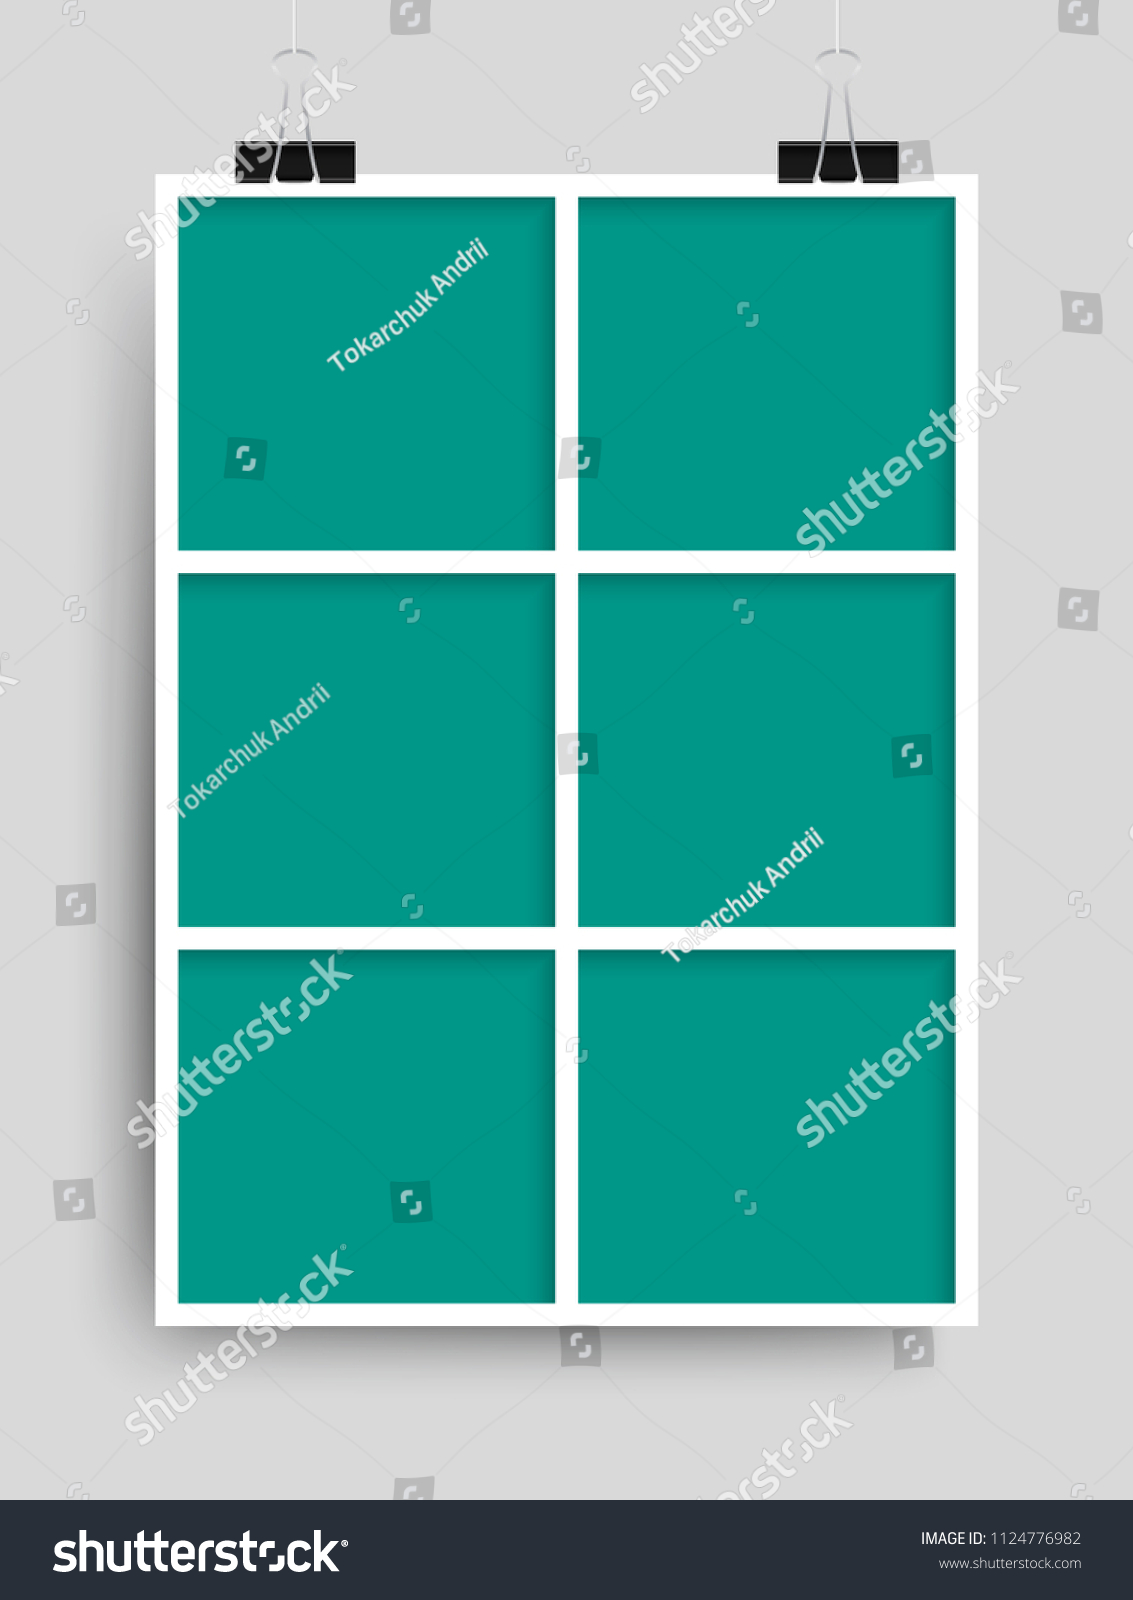 Templates Collage Six Frames Photo Illustration Stock Vector ...